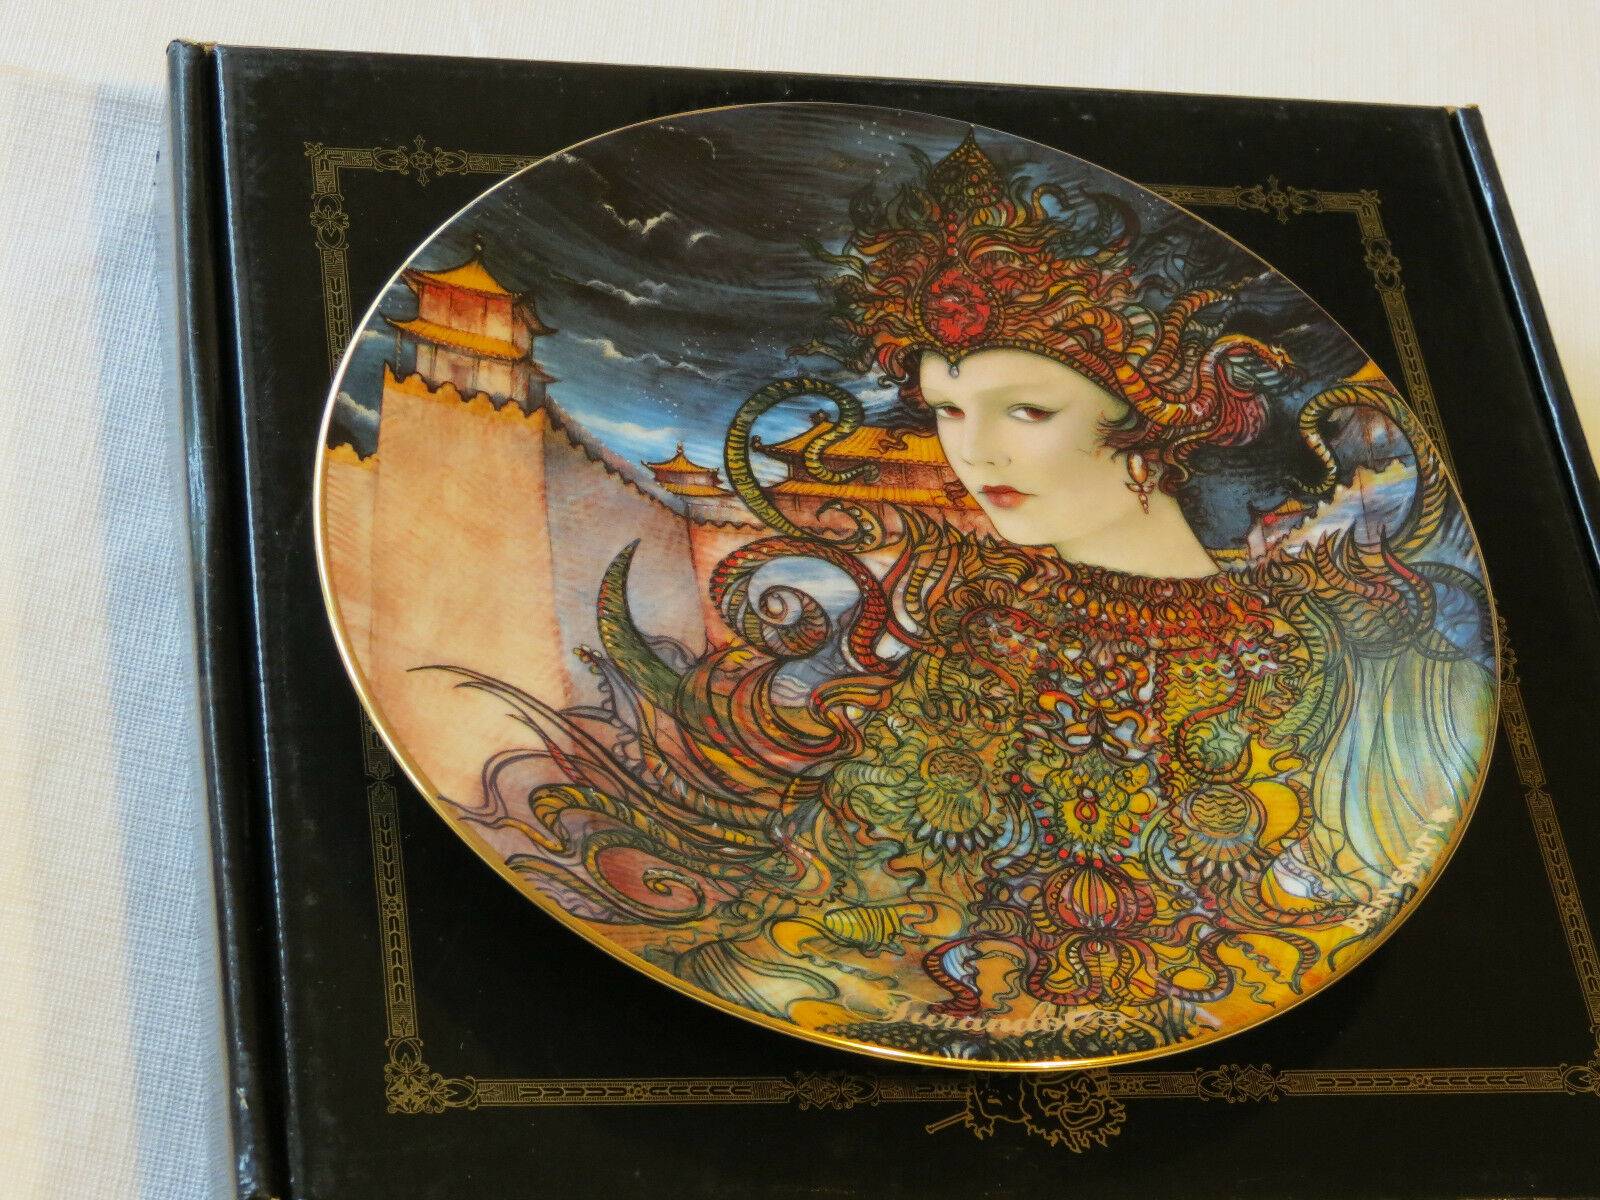 Primary image for Turandot collector plate 38-P63-1.6 1987 COA Box Riccardo Benvenuti Bradford #%